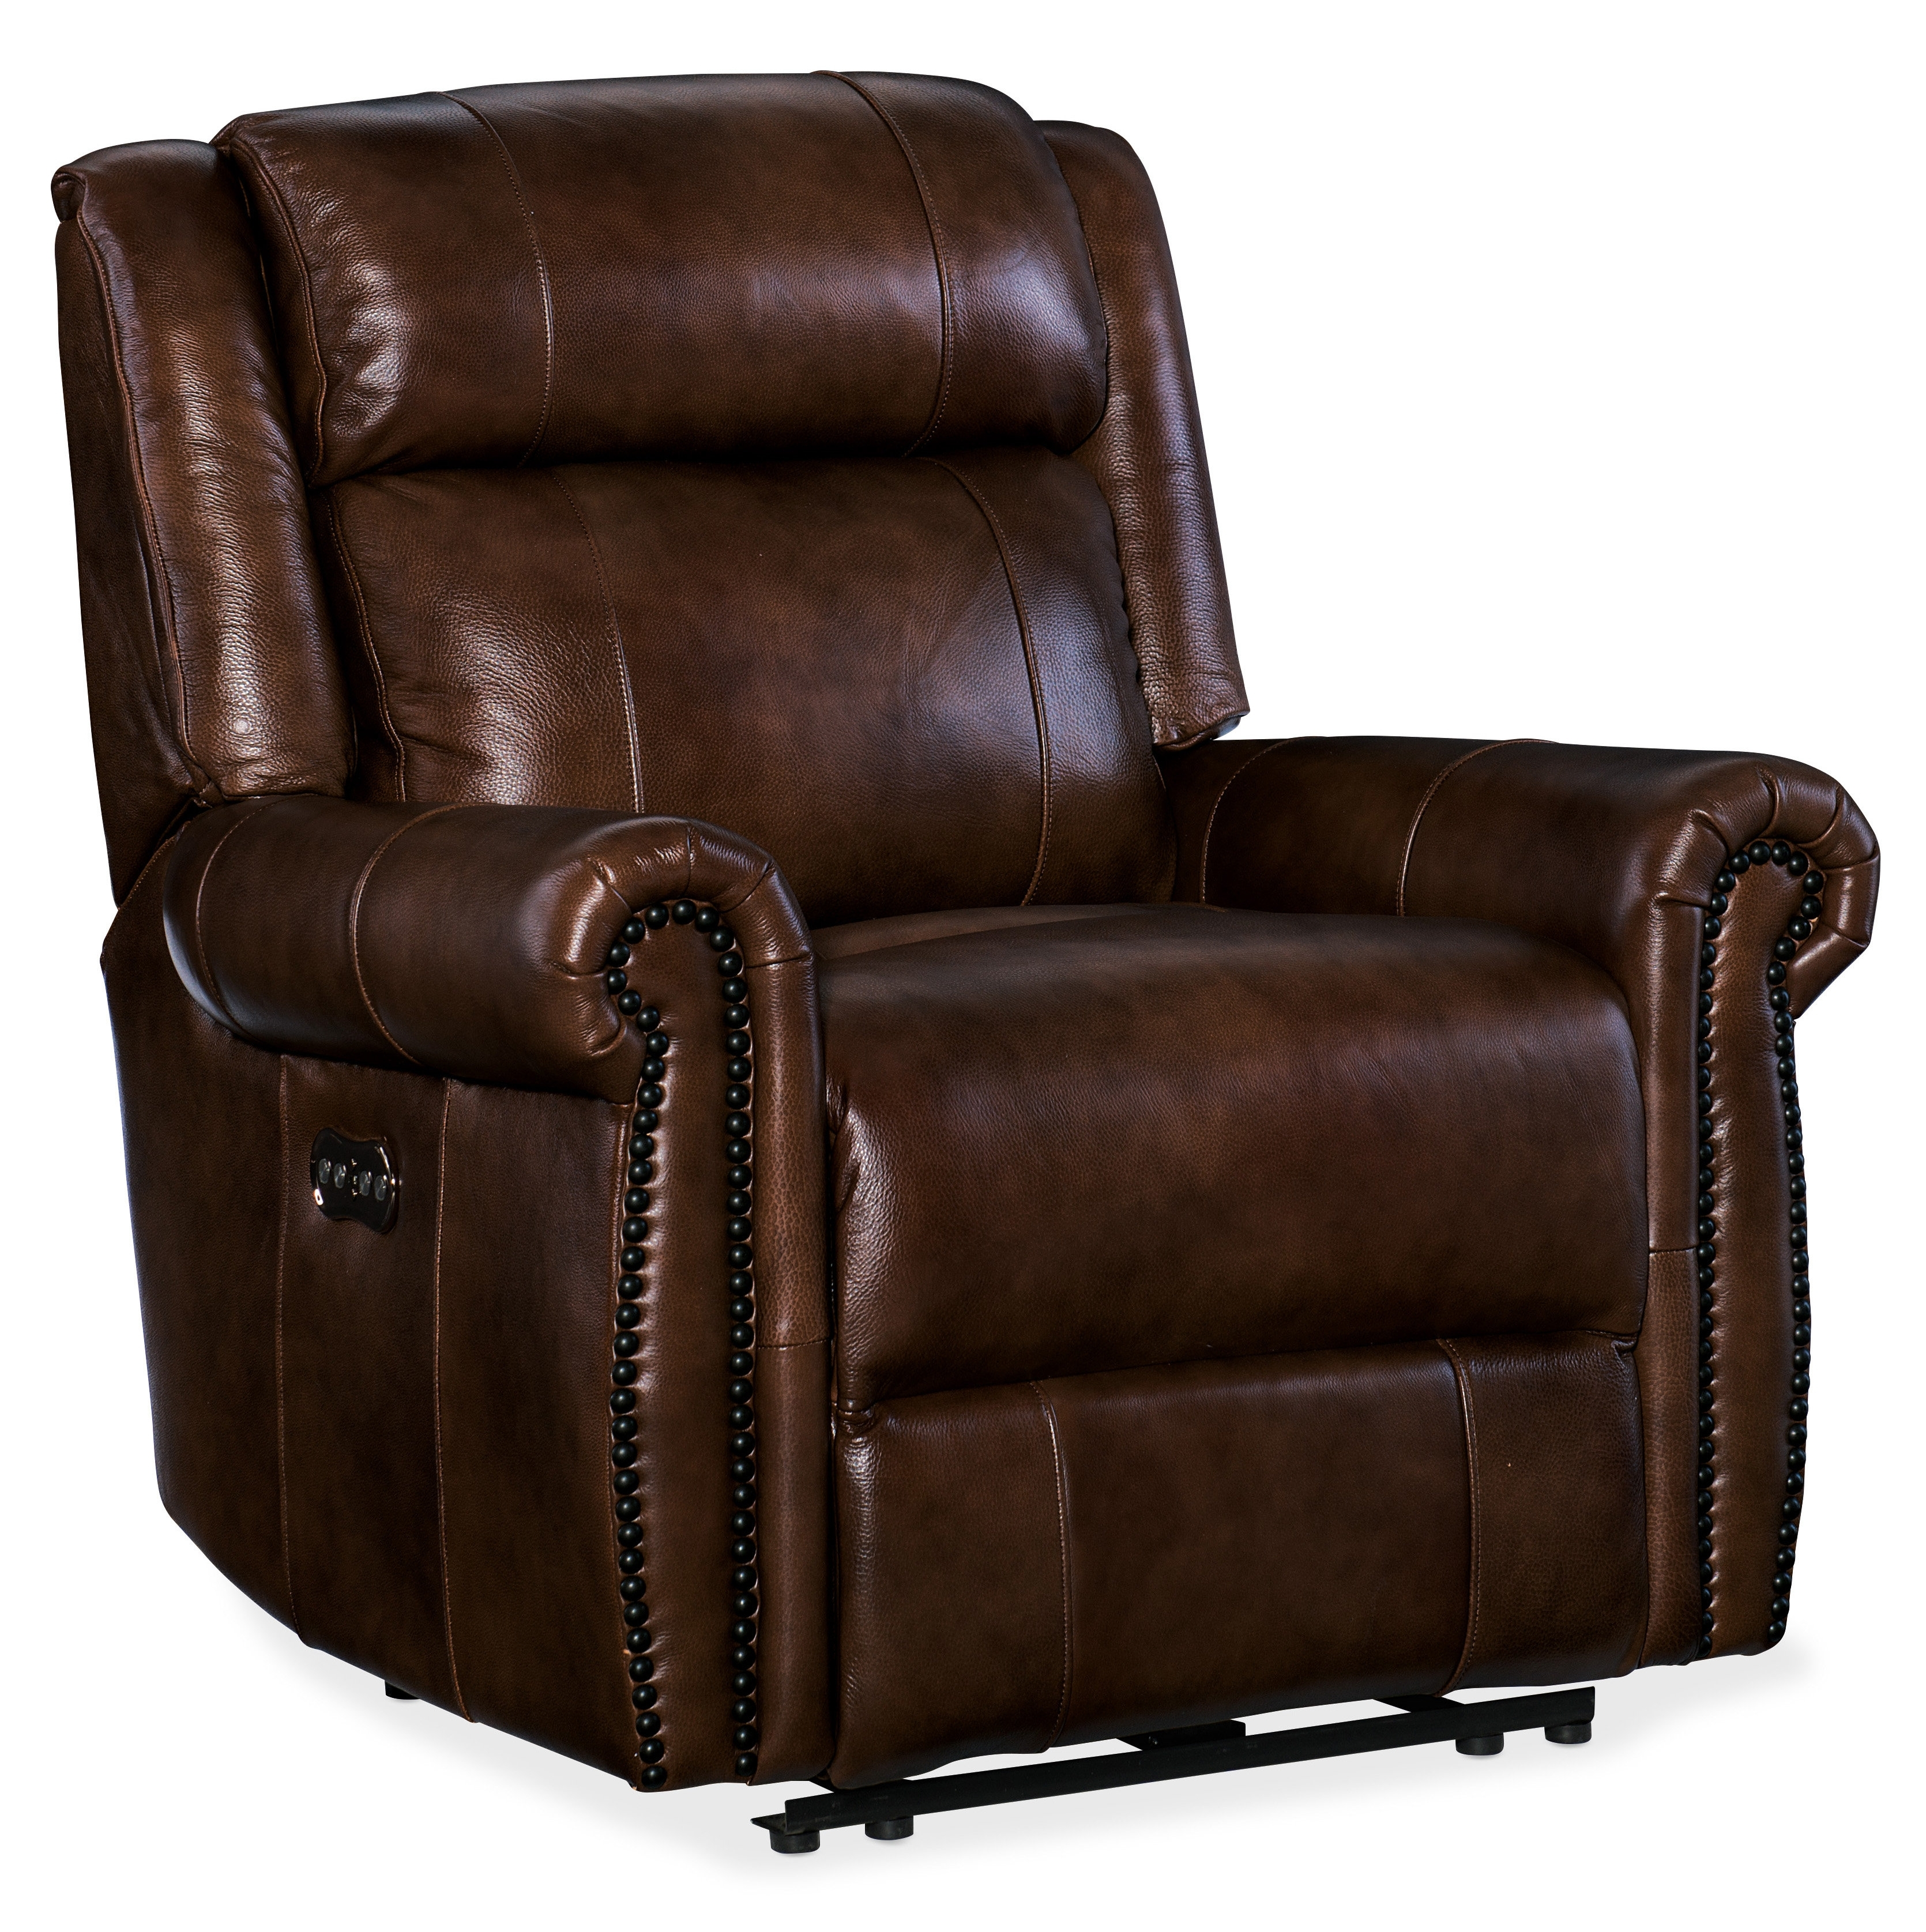 Hooker Furniture Esme Leather Power Recliner With Power Headrest within Clyde Grey Leather 3 Piece Power Reclining Sectionals With Pwr Hdrst & Usb (Image 14 of 30)